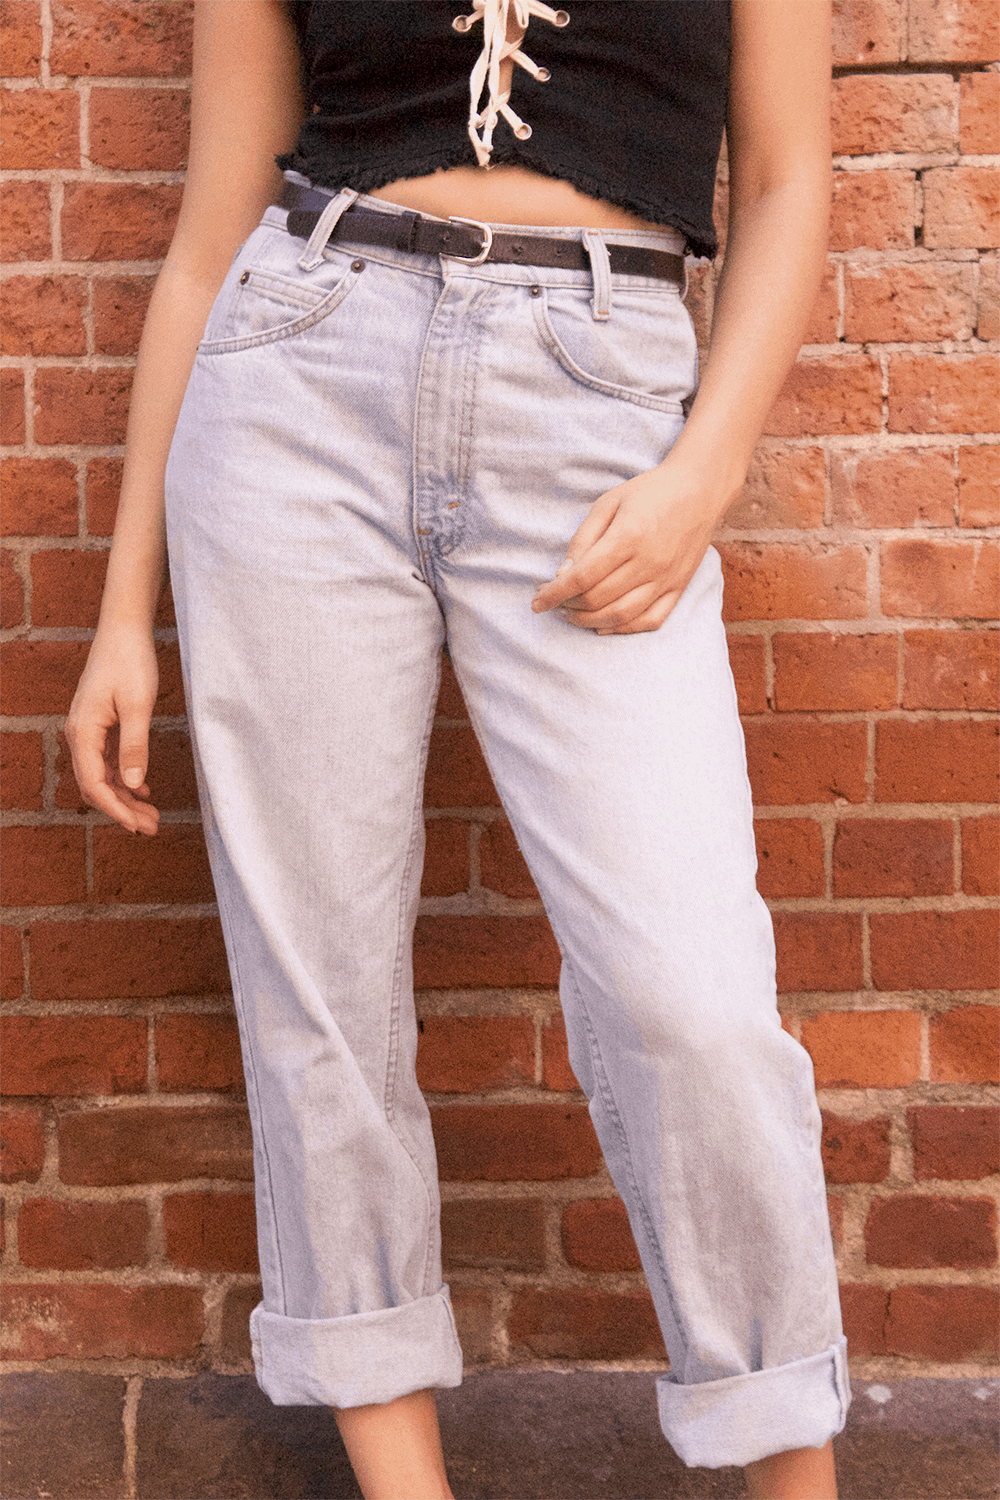 Student wears high-waisted and belted mom jeans with light wash and baggy fit.